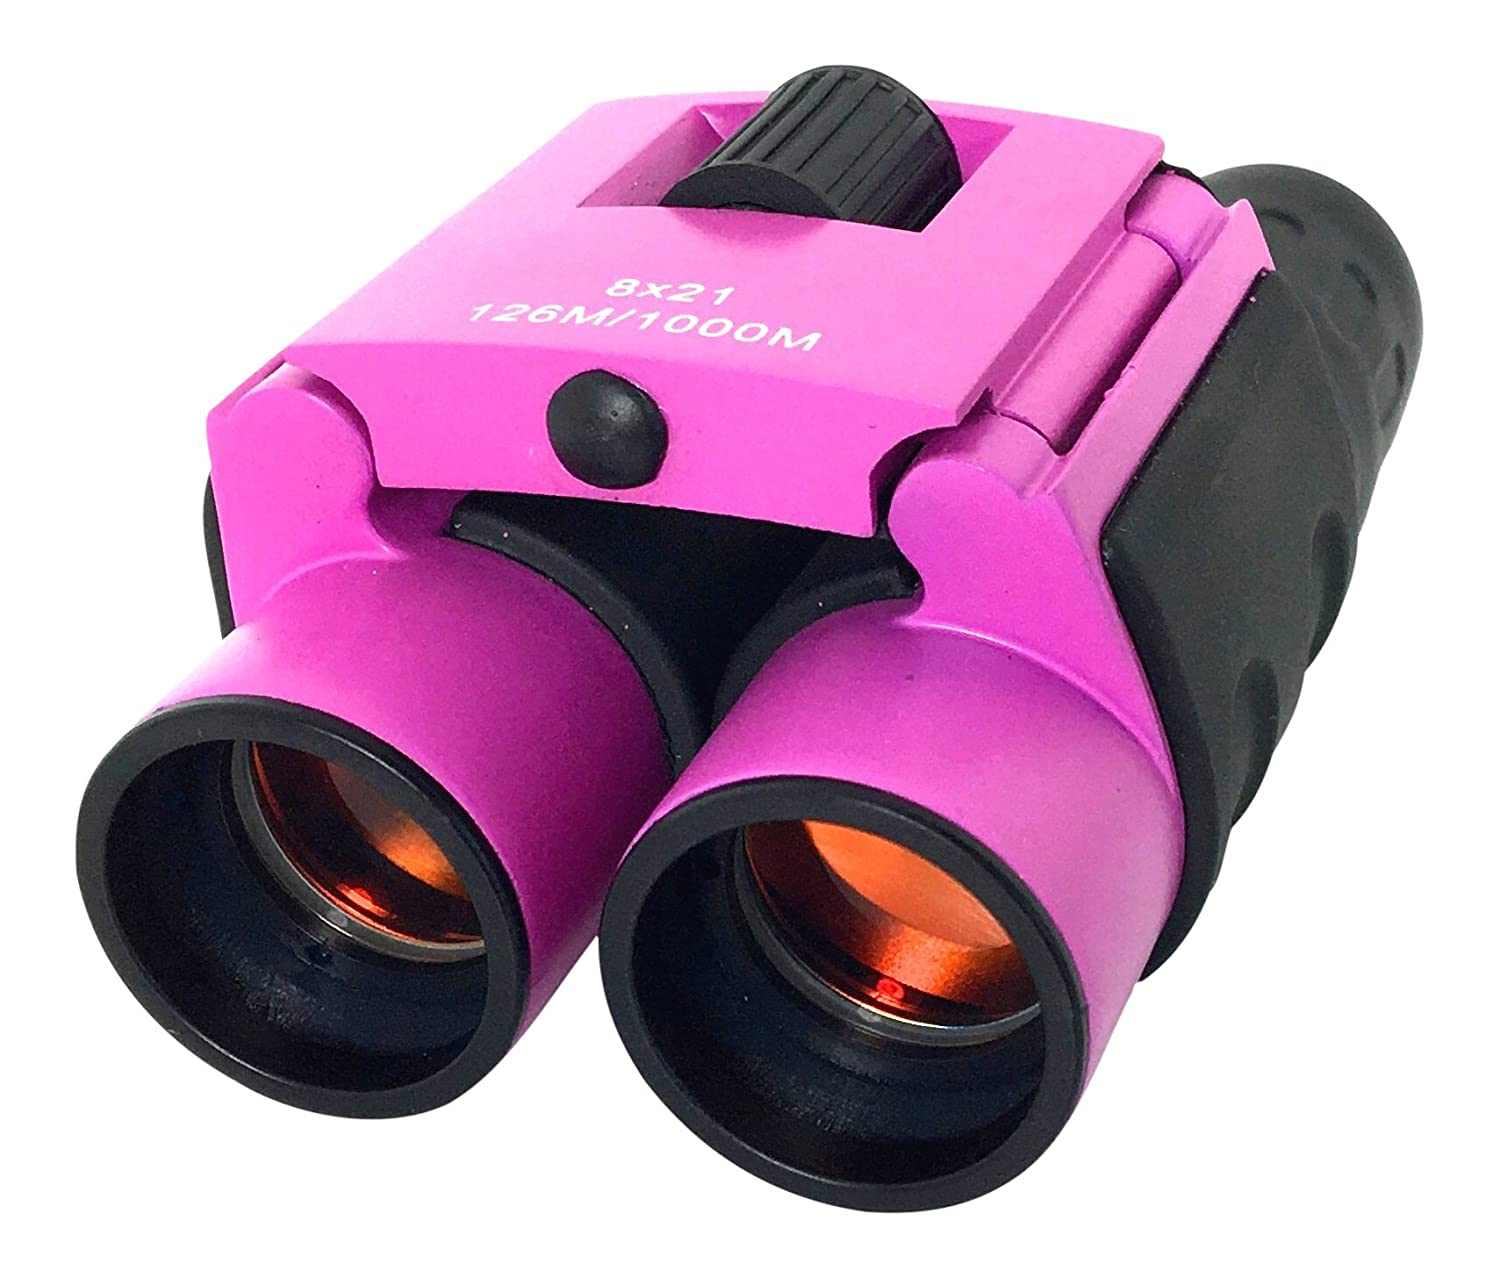 Cameras & Photo Case With Shoulder Strap For Firstoneout Foldable Compact Binoculars 30x60